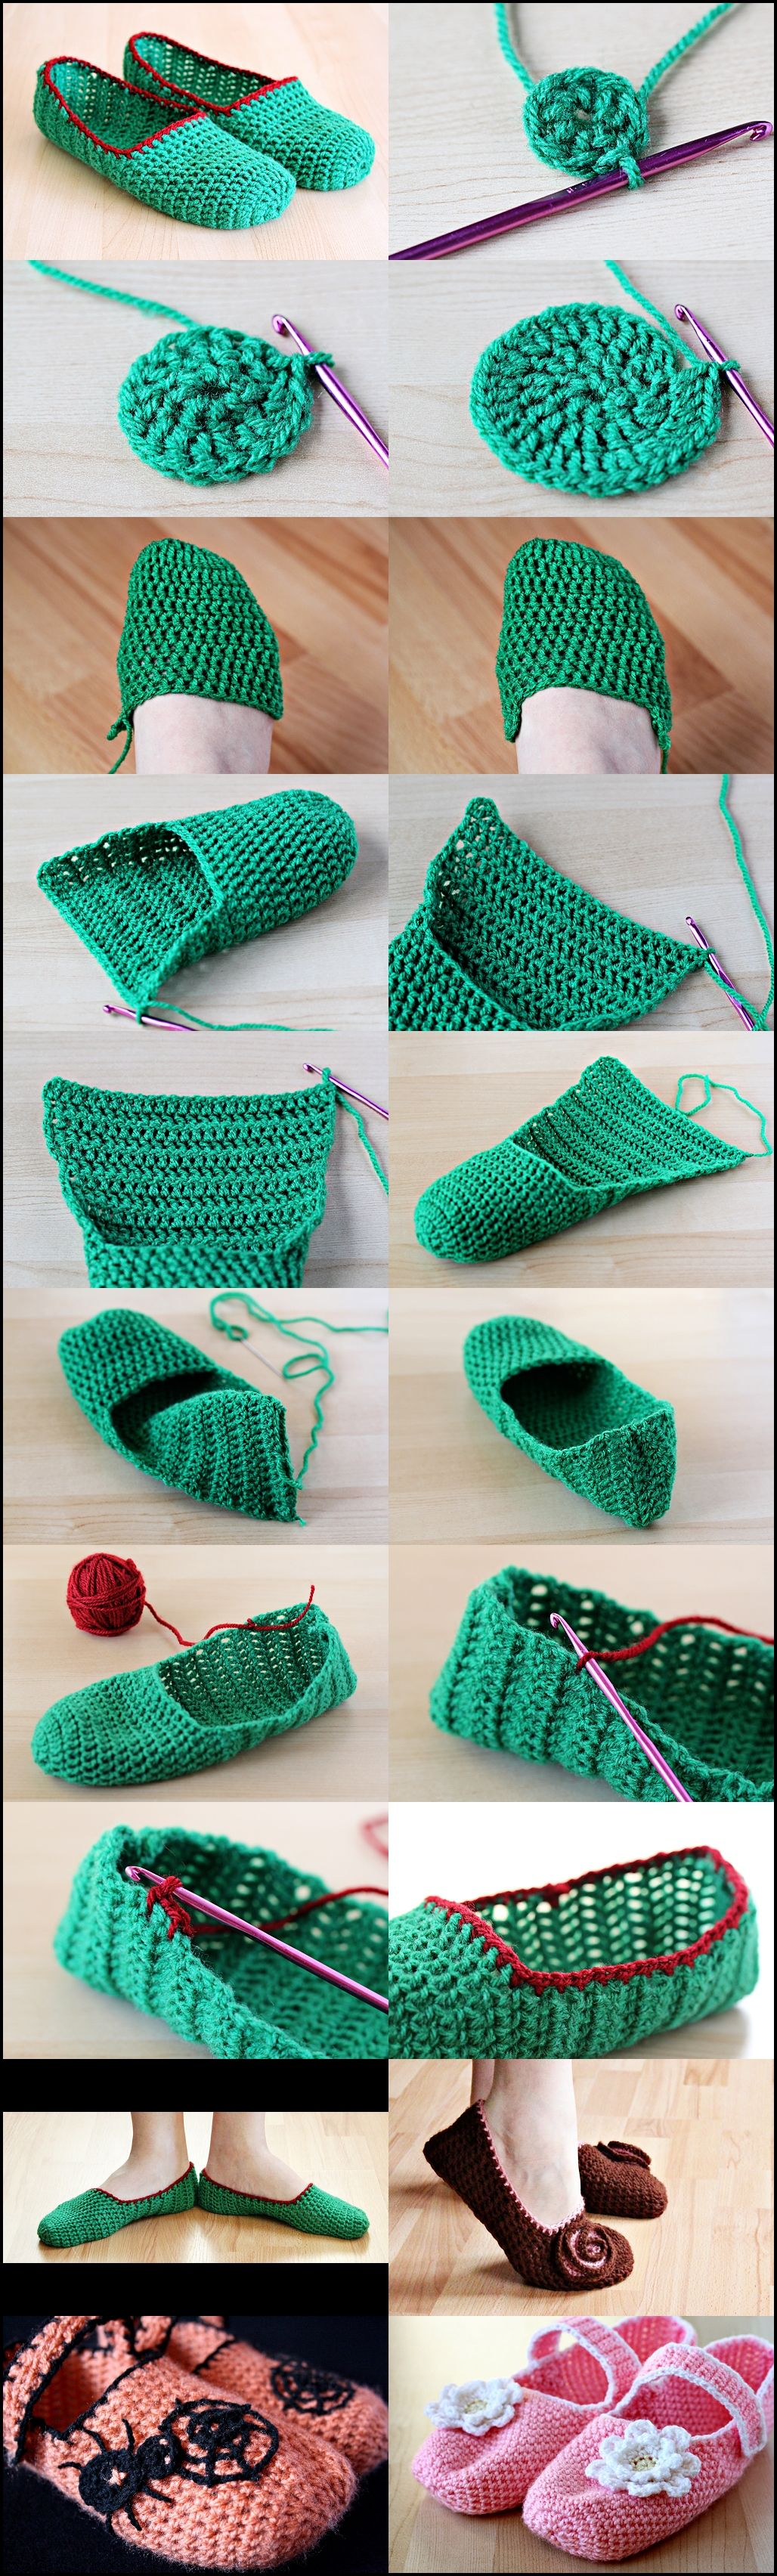 Wonderful DIY Crochet Slippers and Mini Heart with Free Pattern ...